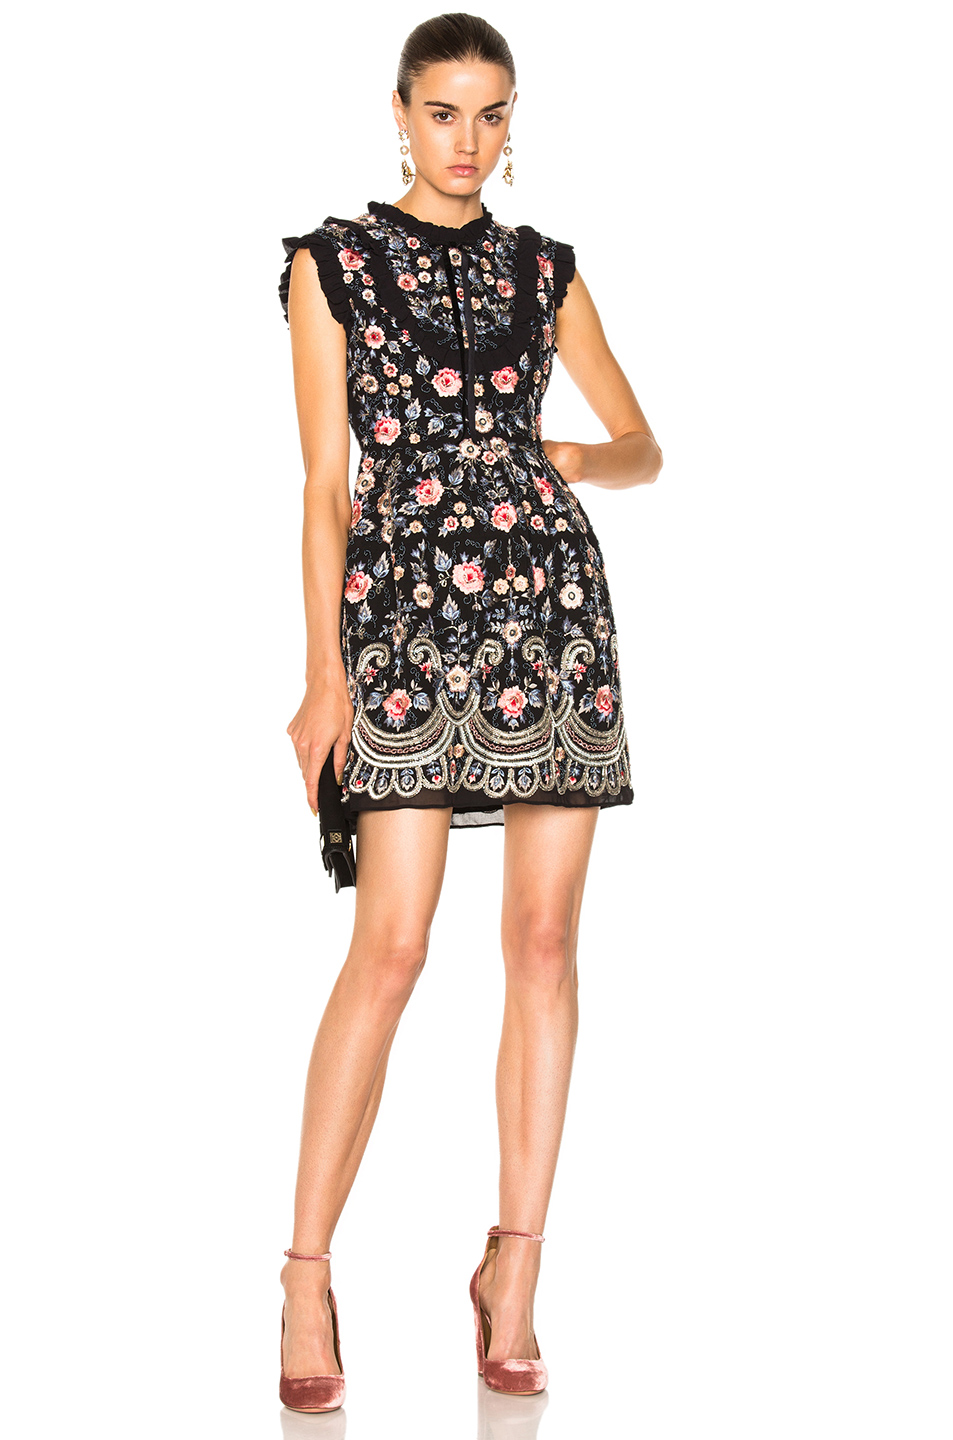 Needle & Thread Whisper Prom Dress in Black,Floral